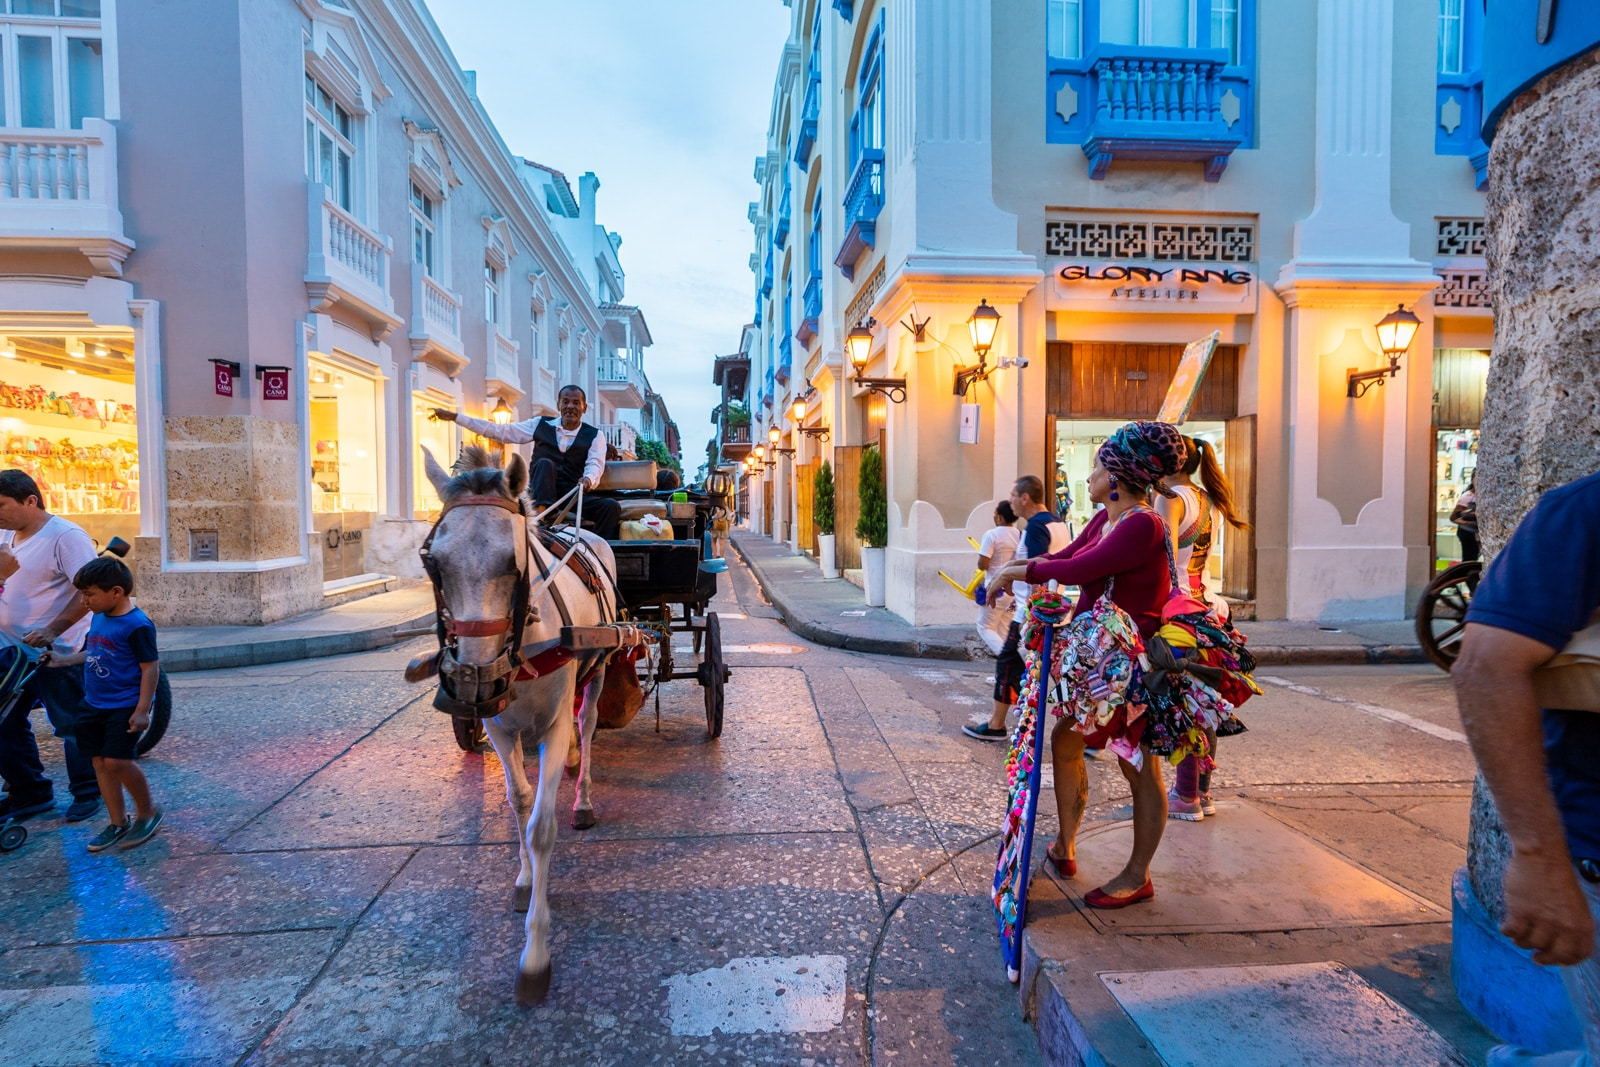 Reverse culture shock from long-term travel - Streets of Cartagena, Colombia - Lost With Purpose travel blog